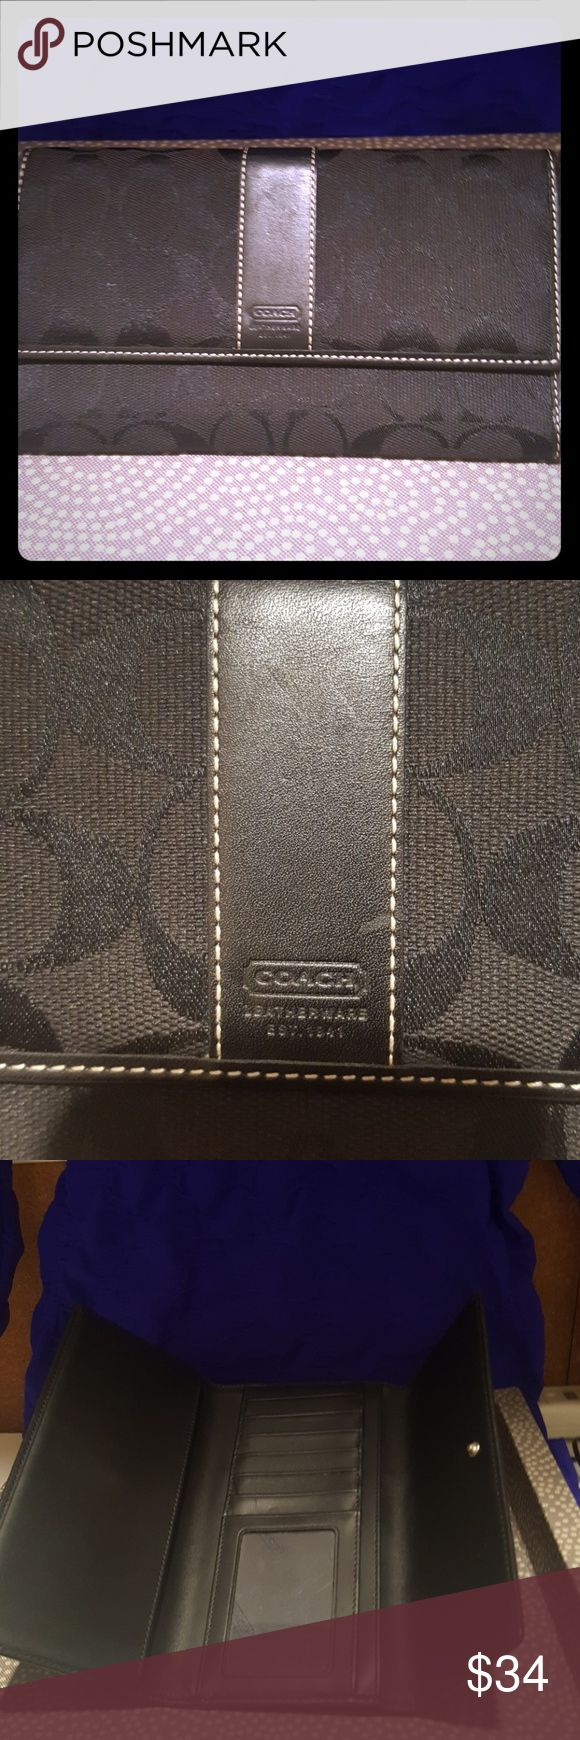 Coach Signature Jared Canvas Wallet Signature Jared canvas Define texture and hand finished leather trim Glovetanned leather inside Holds 7 credit cards and has one window holder A side zipper pocket Snap close Coach Bags Wallets